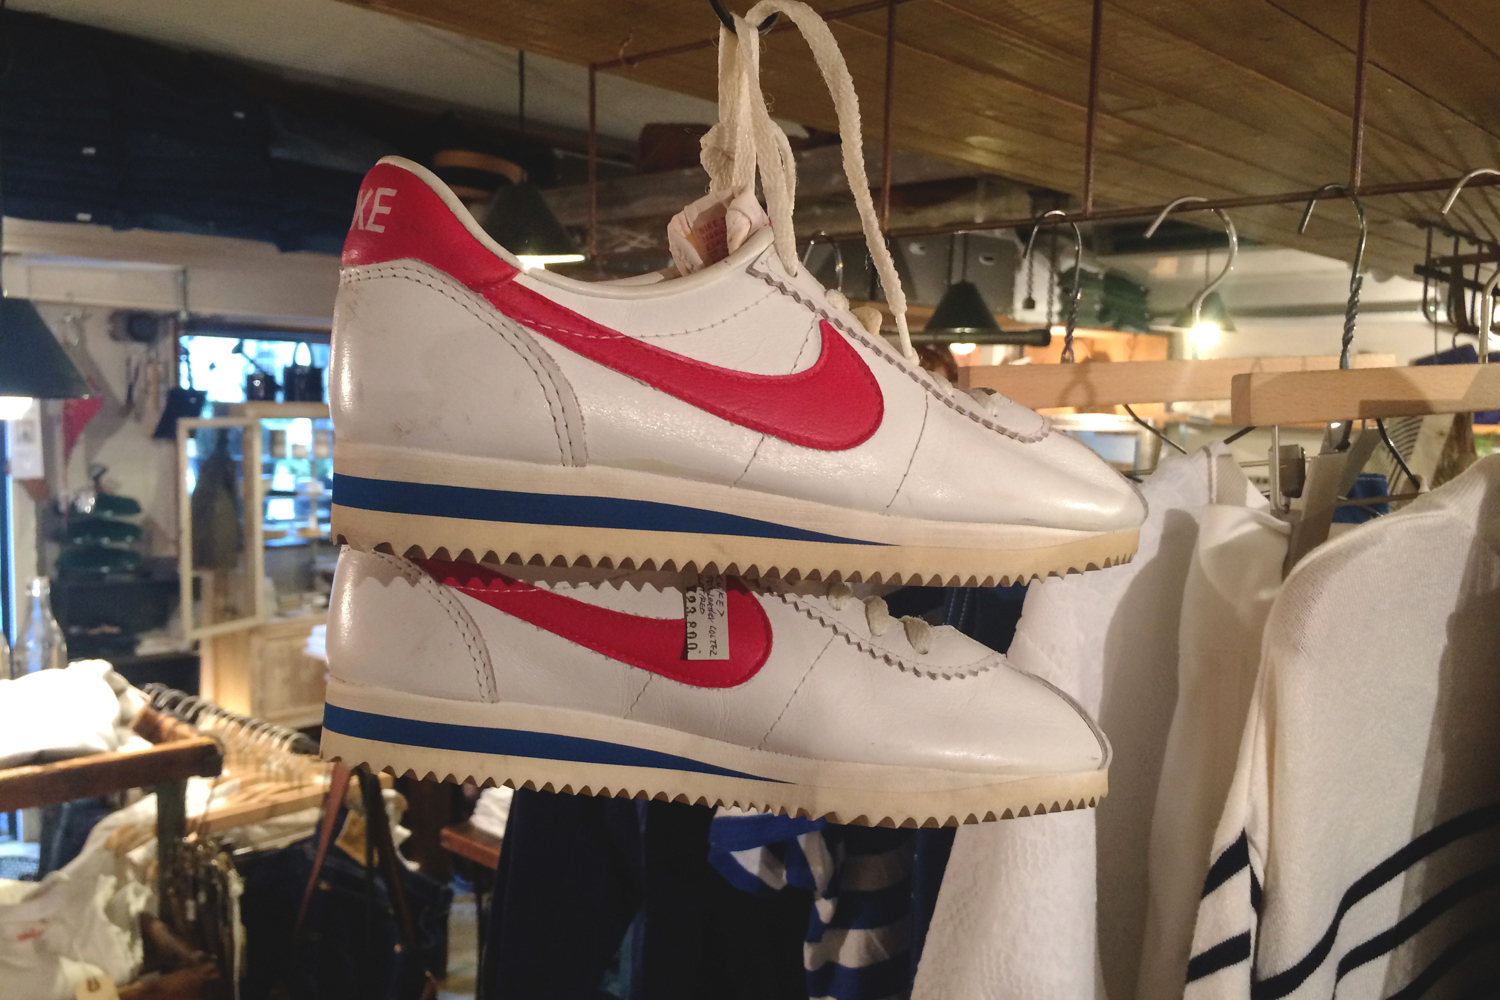 best website 19e11 a8838 ... reduced discoveries ranged from original made in france adidas  superstars nike cortez from their 1972 birth